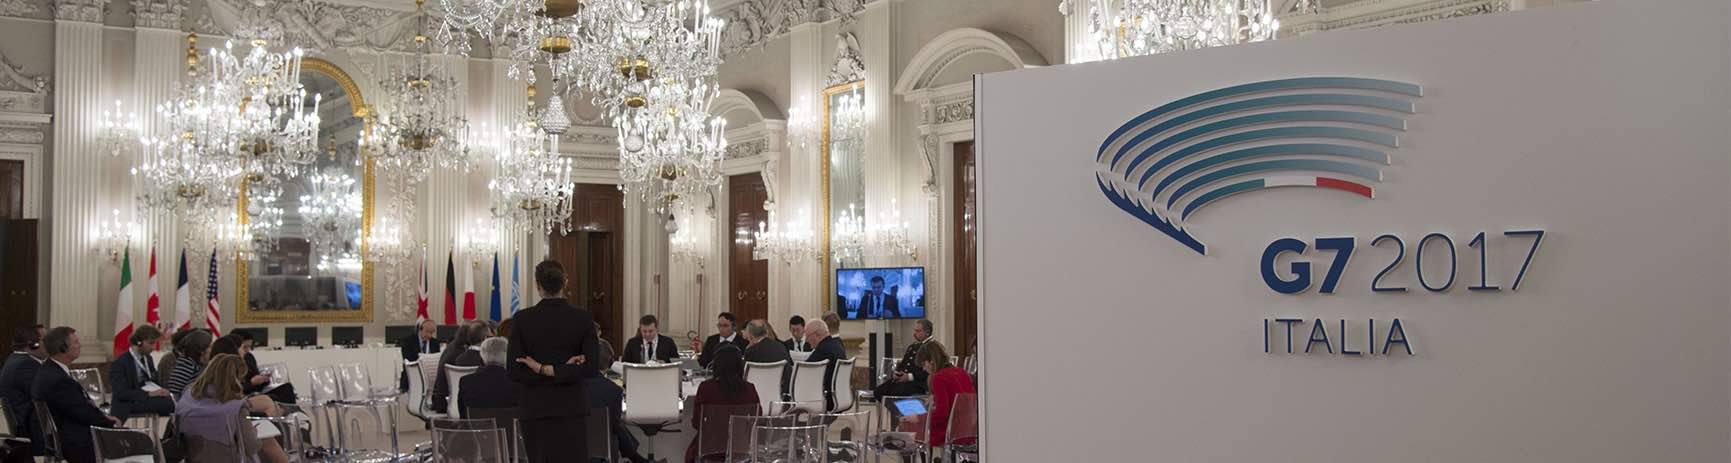 G7 conference on digital transformation